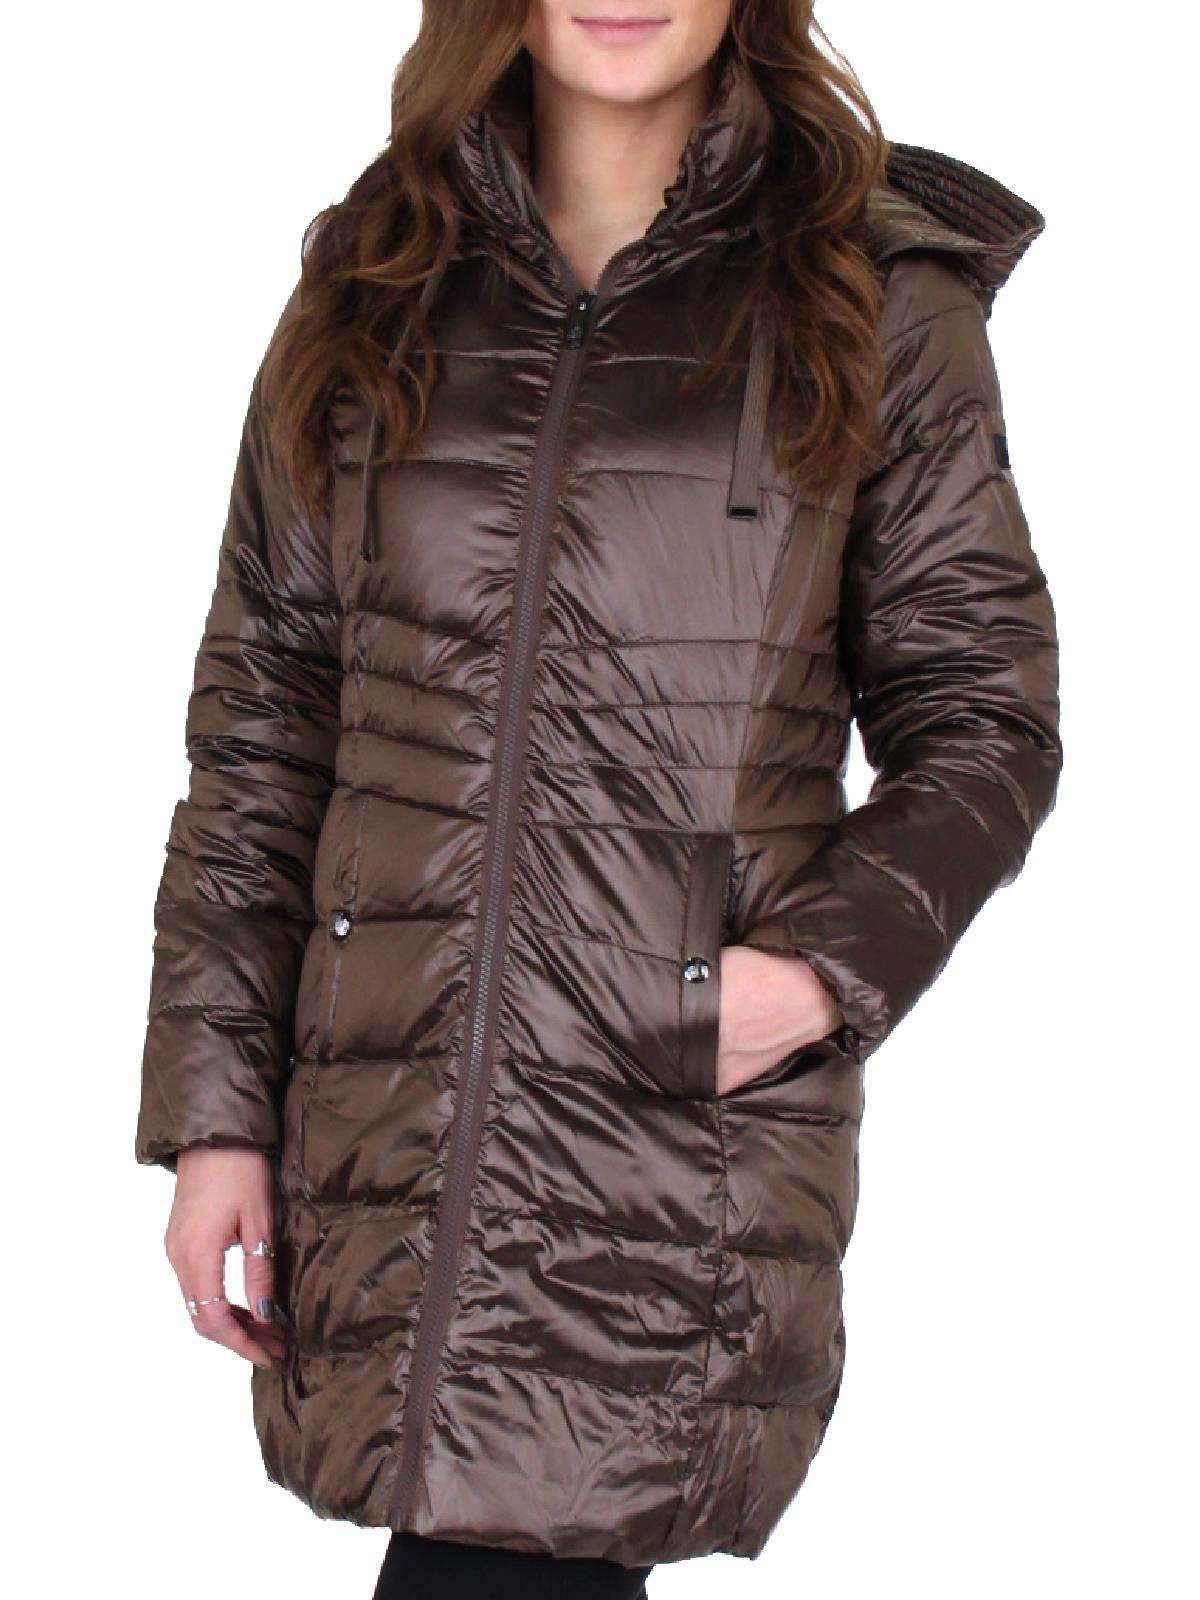 Winter is here! Hooded Ted Baker Coat 3 in 1 Canopy Jacket size 4